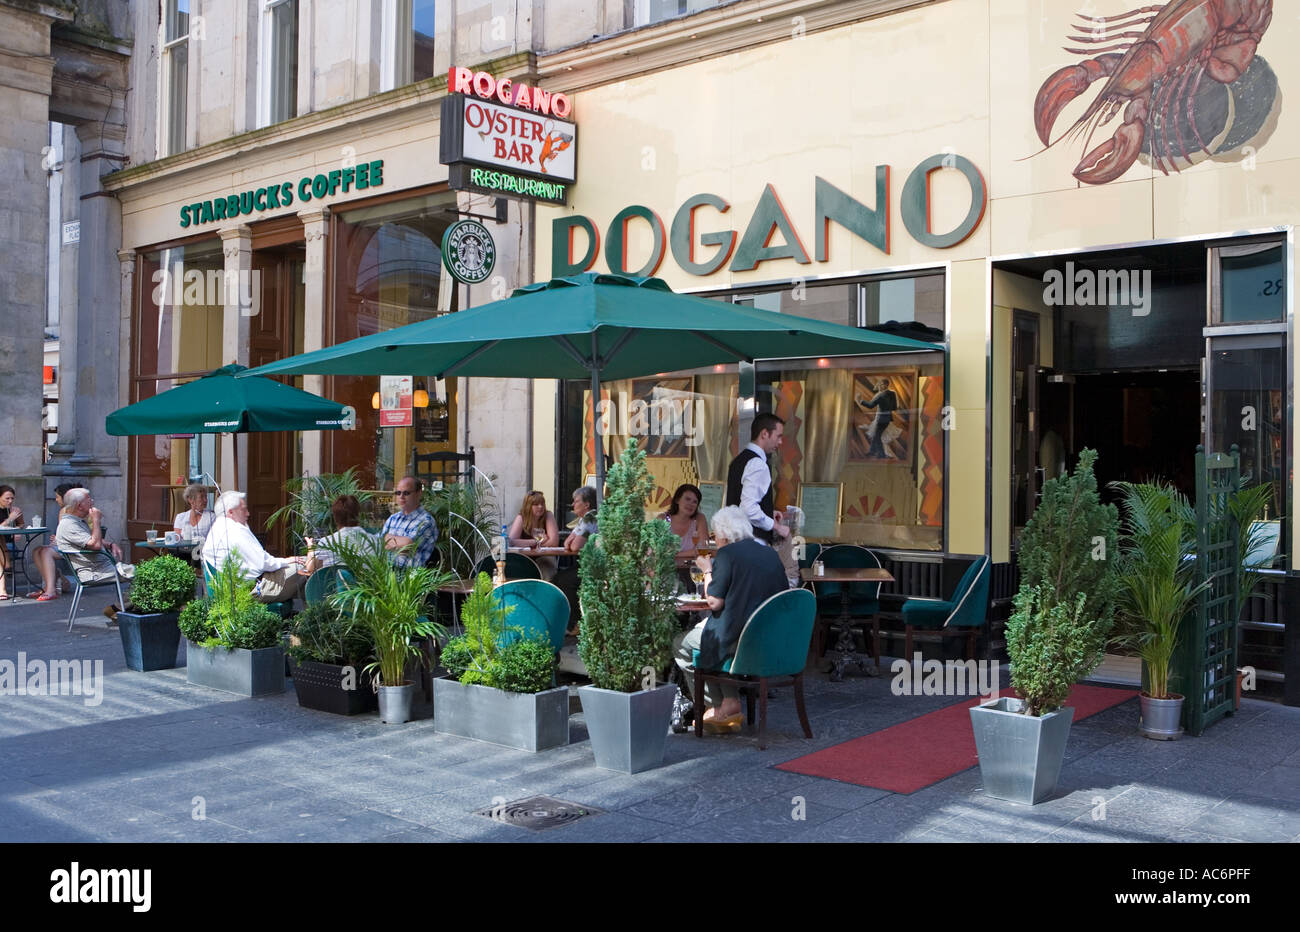 EXCHANGE PLACE GLASGOW AND THE ROGANO RESTAURANT - Stock Image